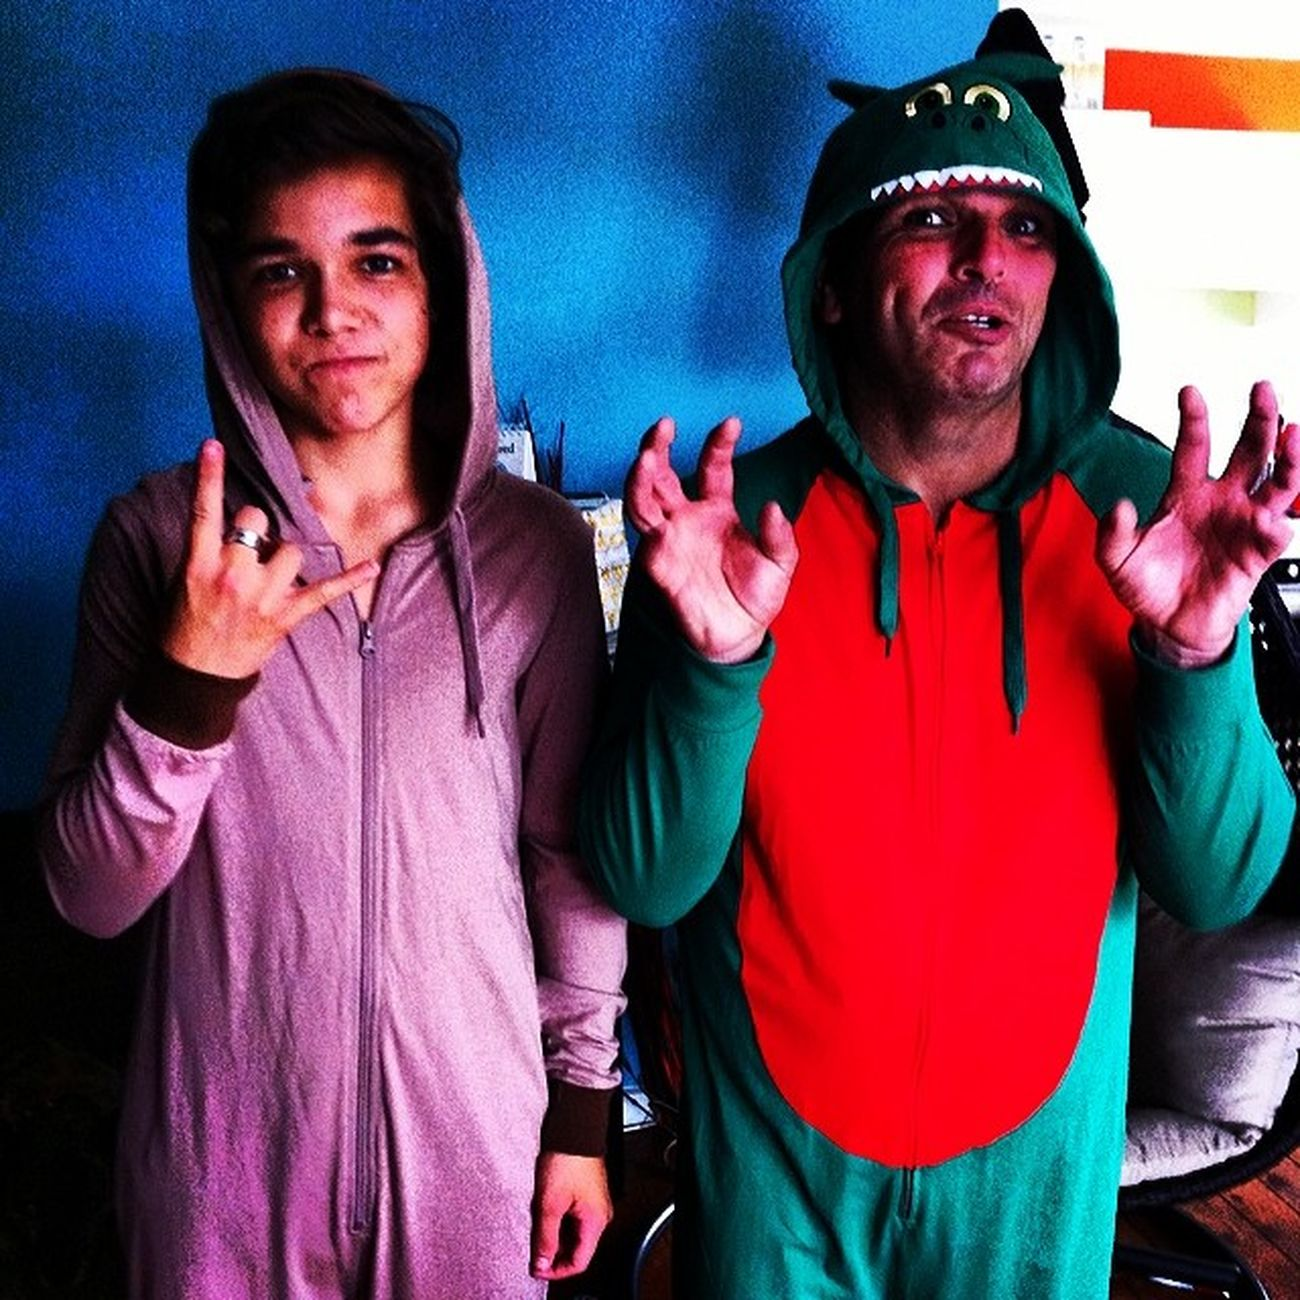 Onesies don't tell them it's on Instagram Instasecret :)